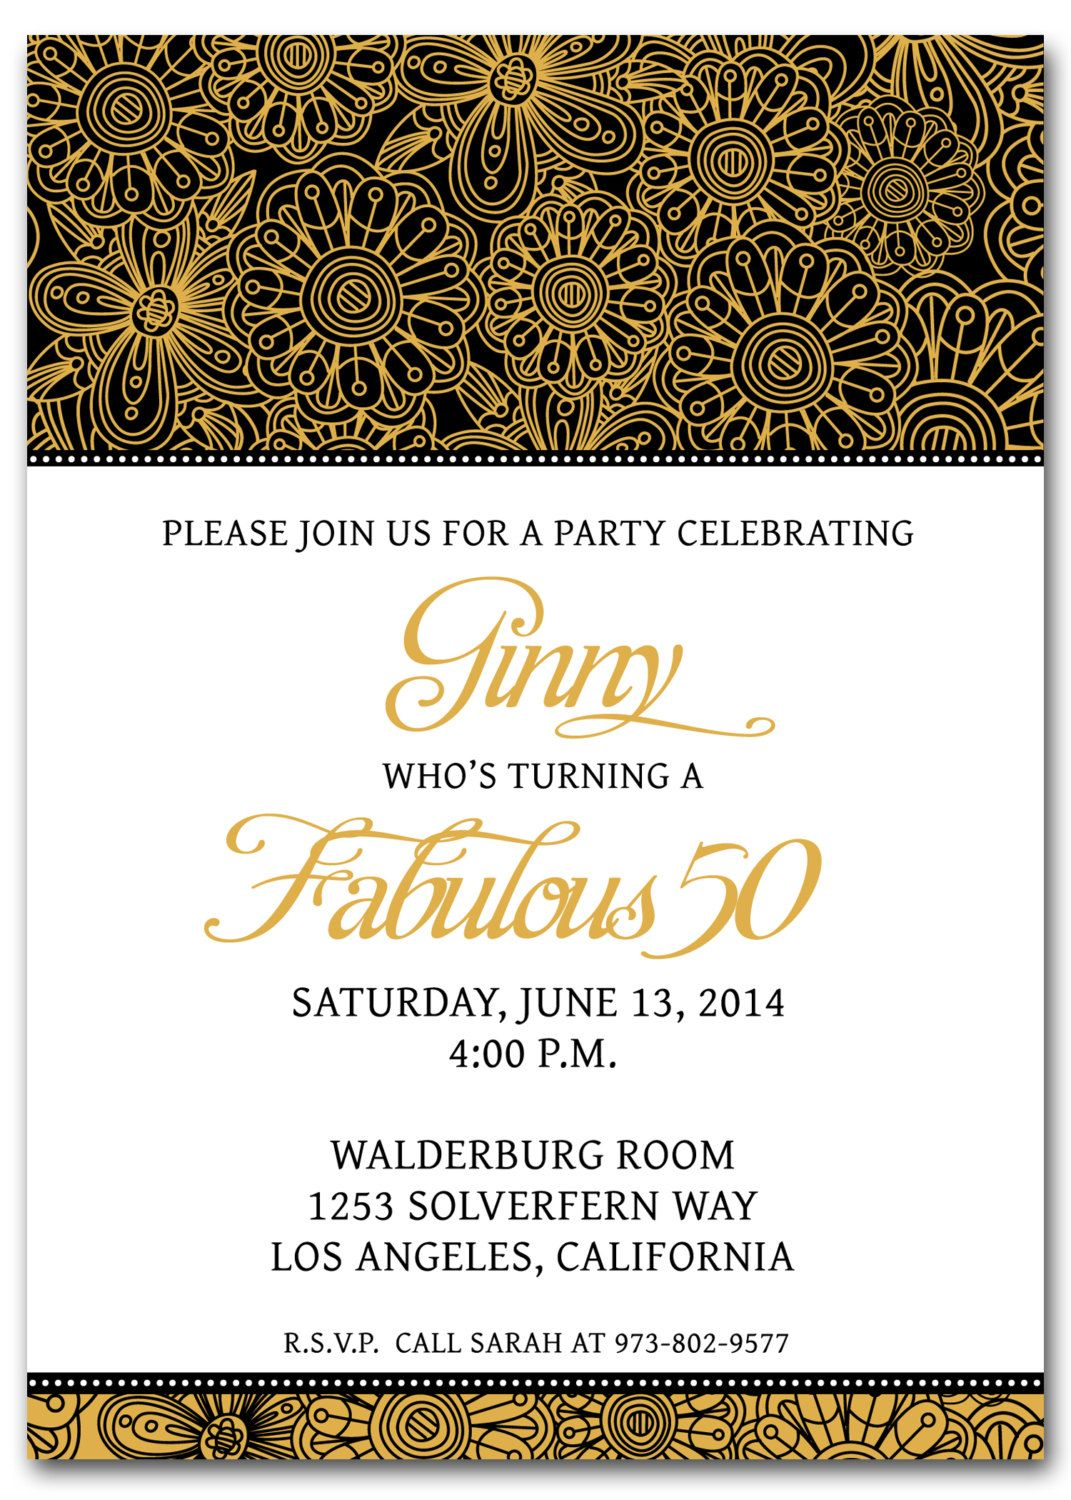 50th Birthday Invitation Templates Free Printable | My Birthday ...